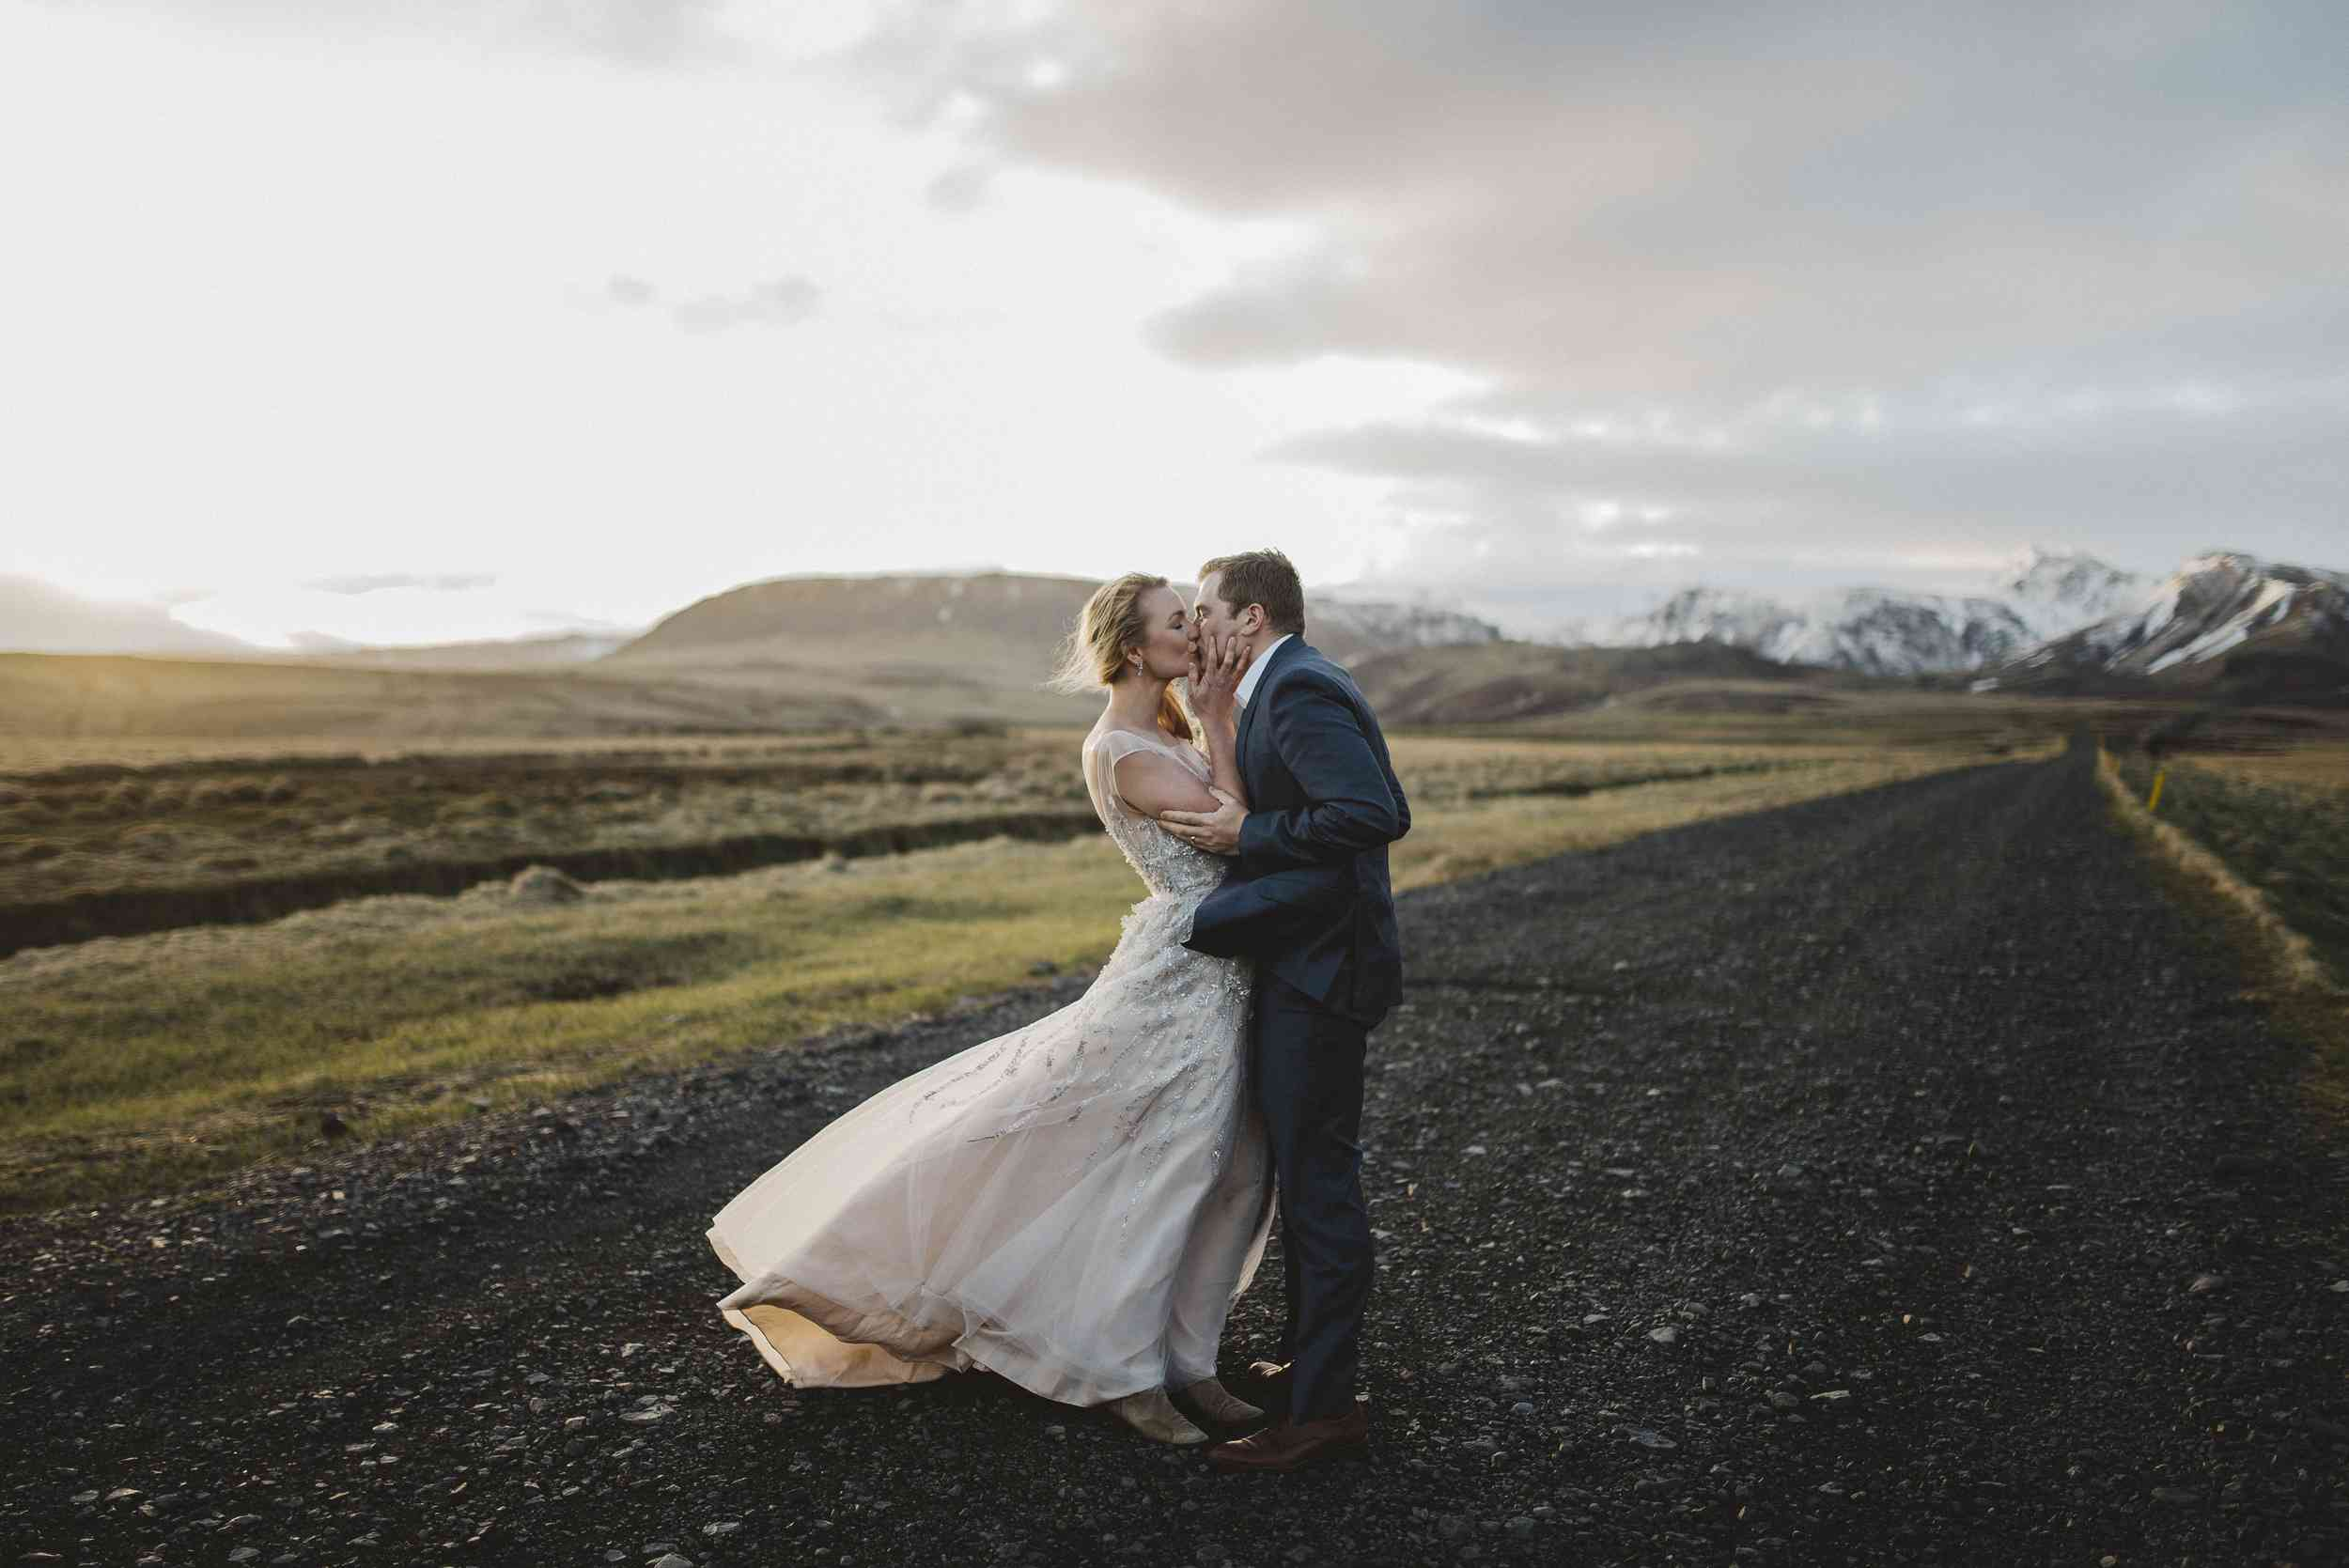 Couple kissing on a road in Iceland